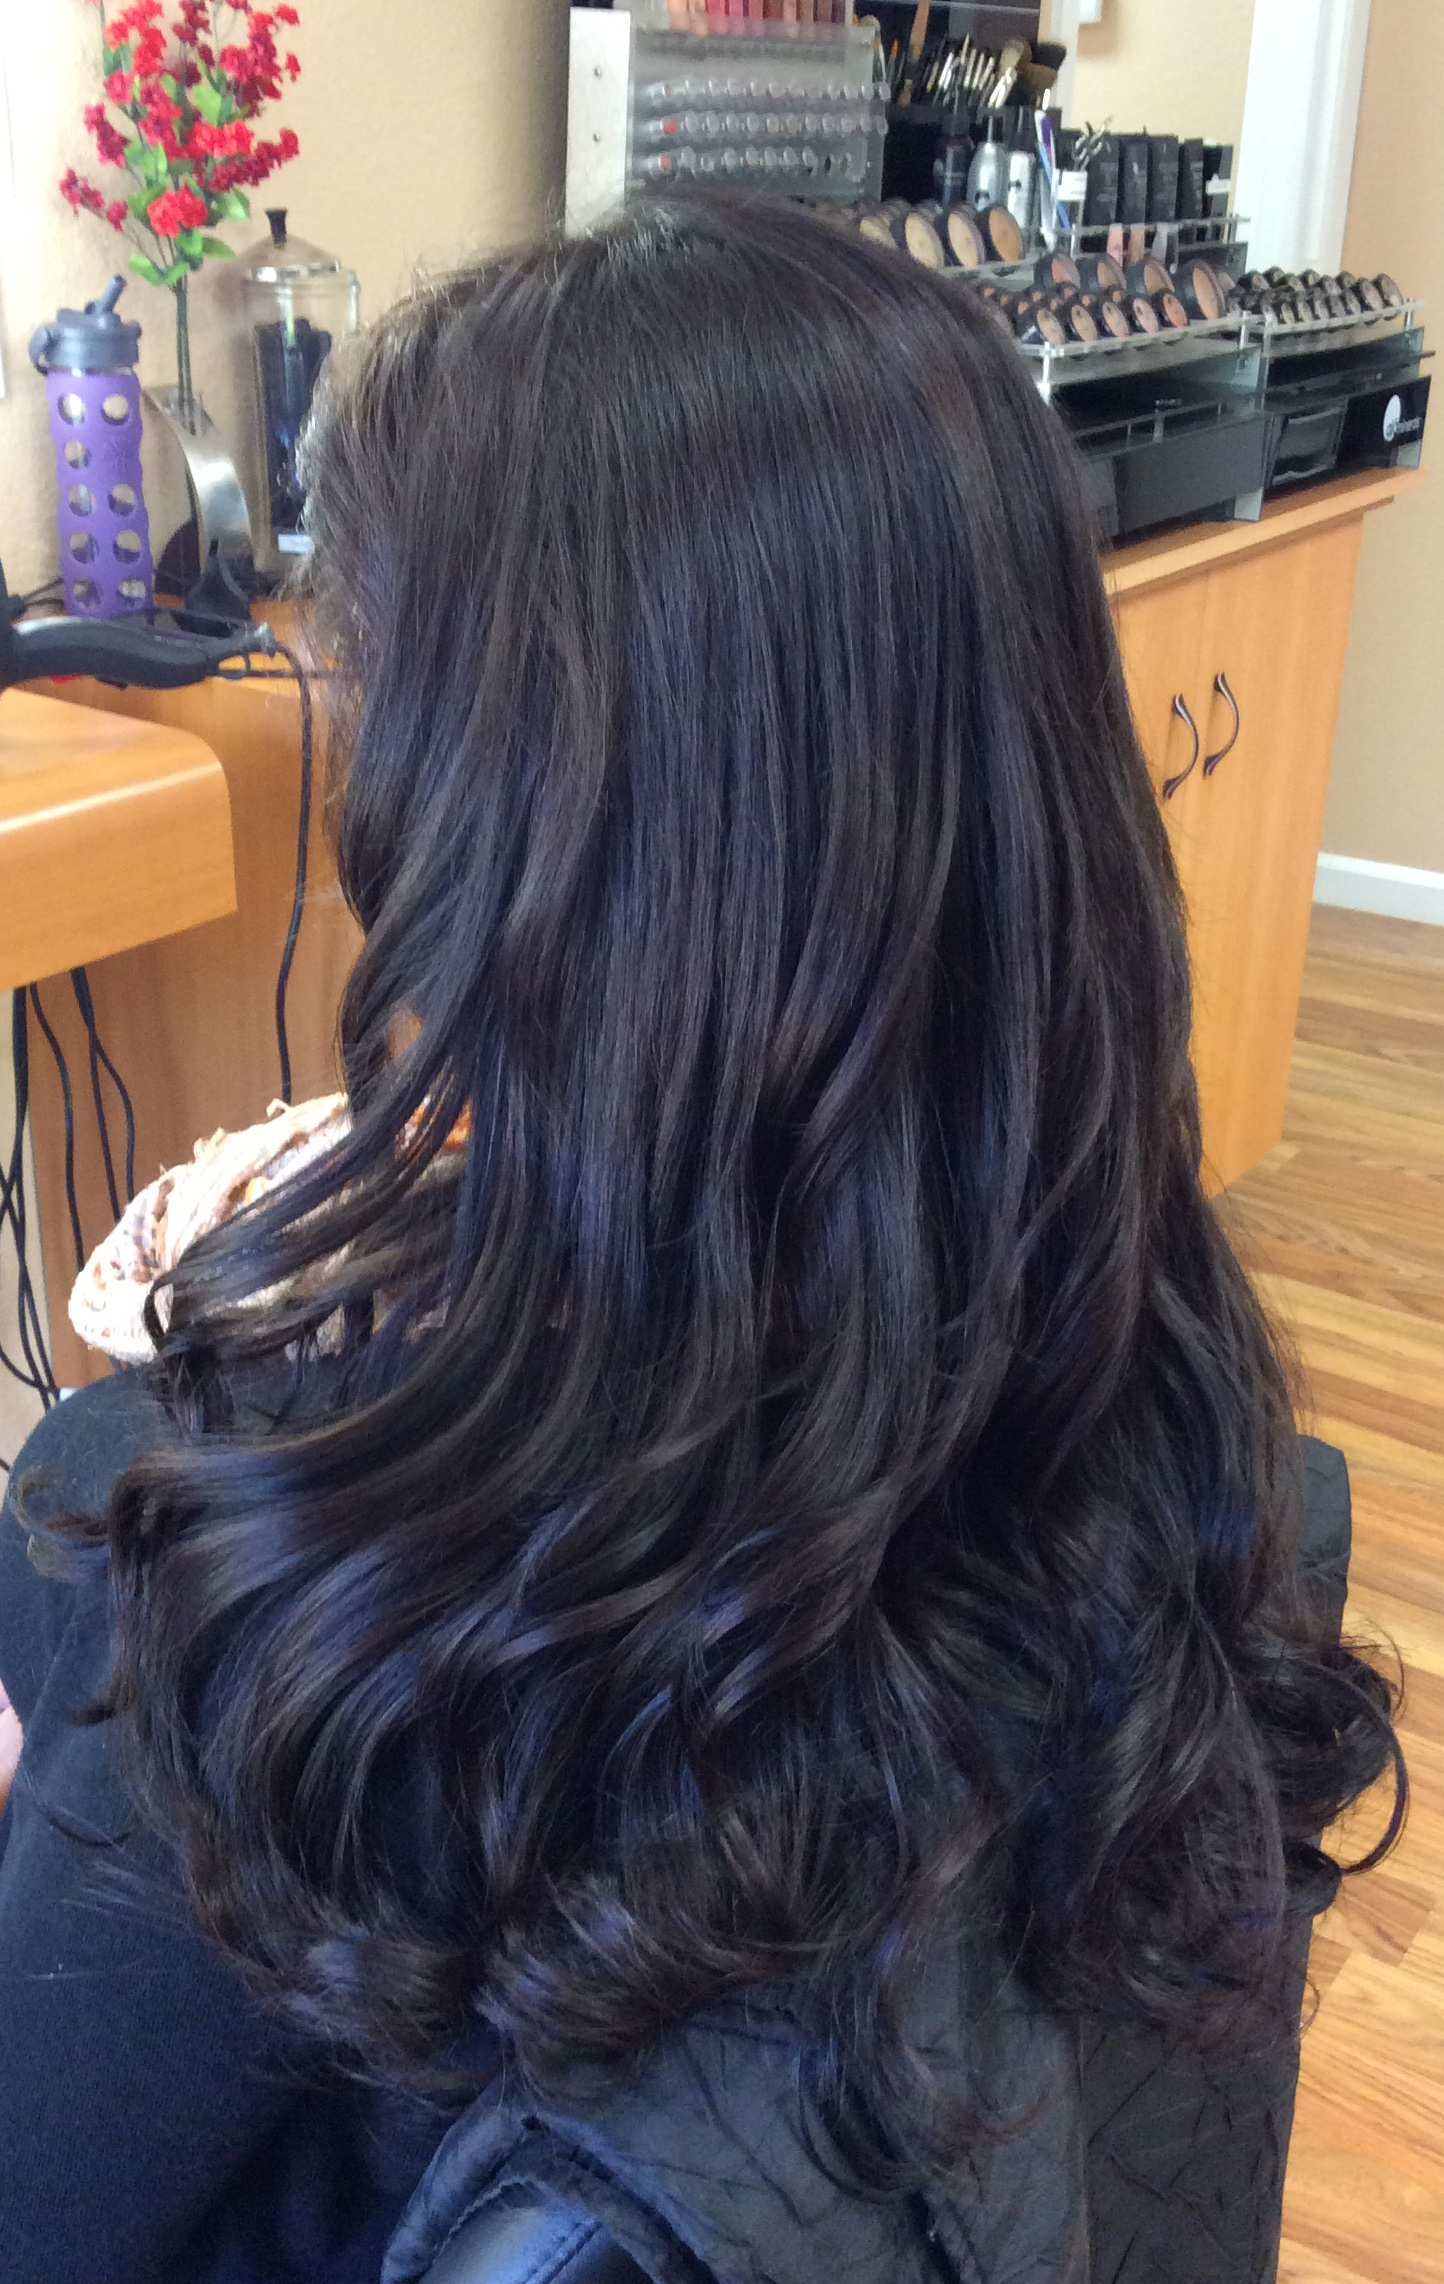 Hair extensions martine langsam iat after hairdreams nano strands pmusecretfo Images